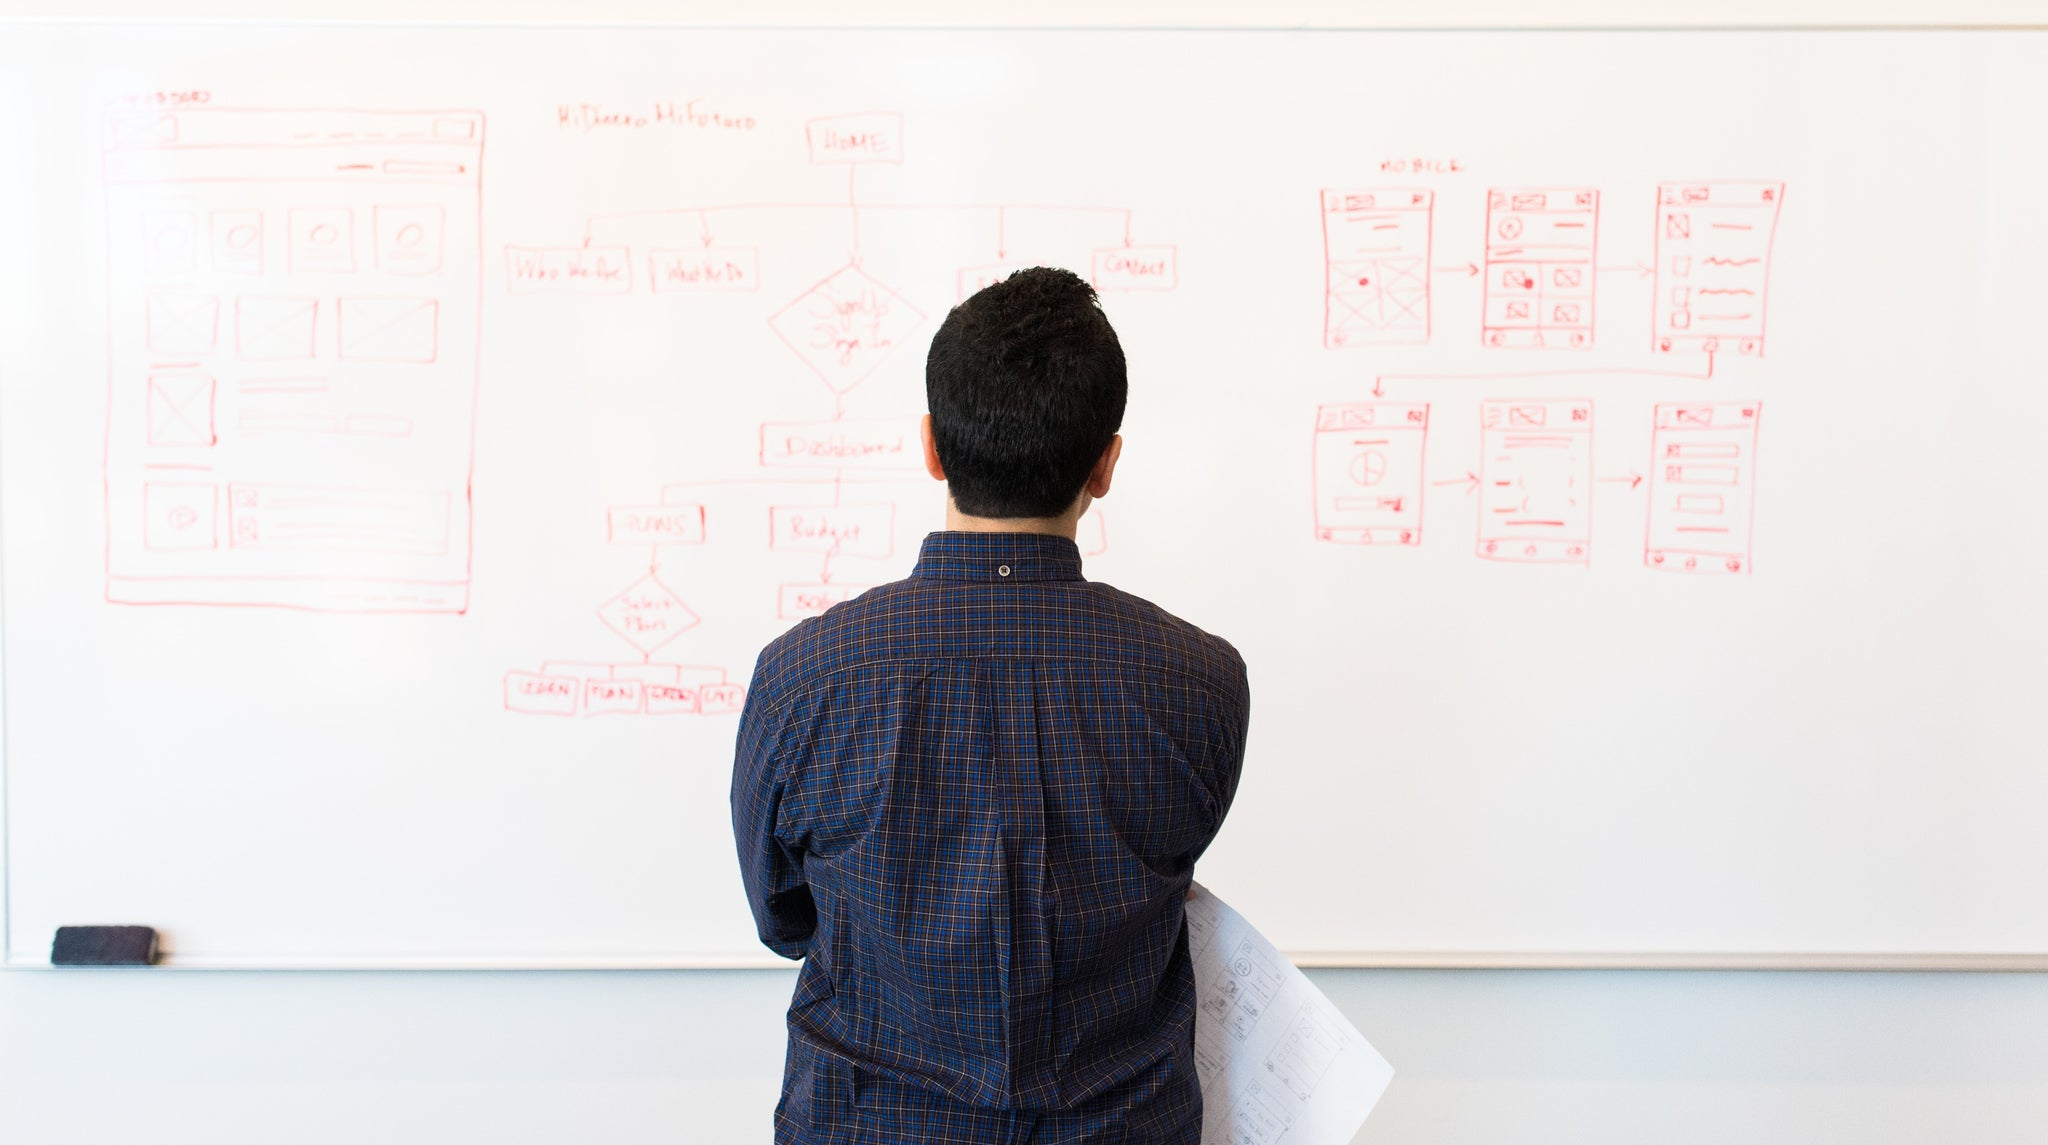 Man looking at white-board.